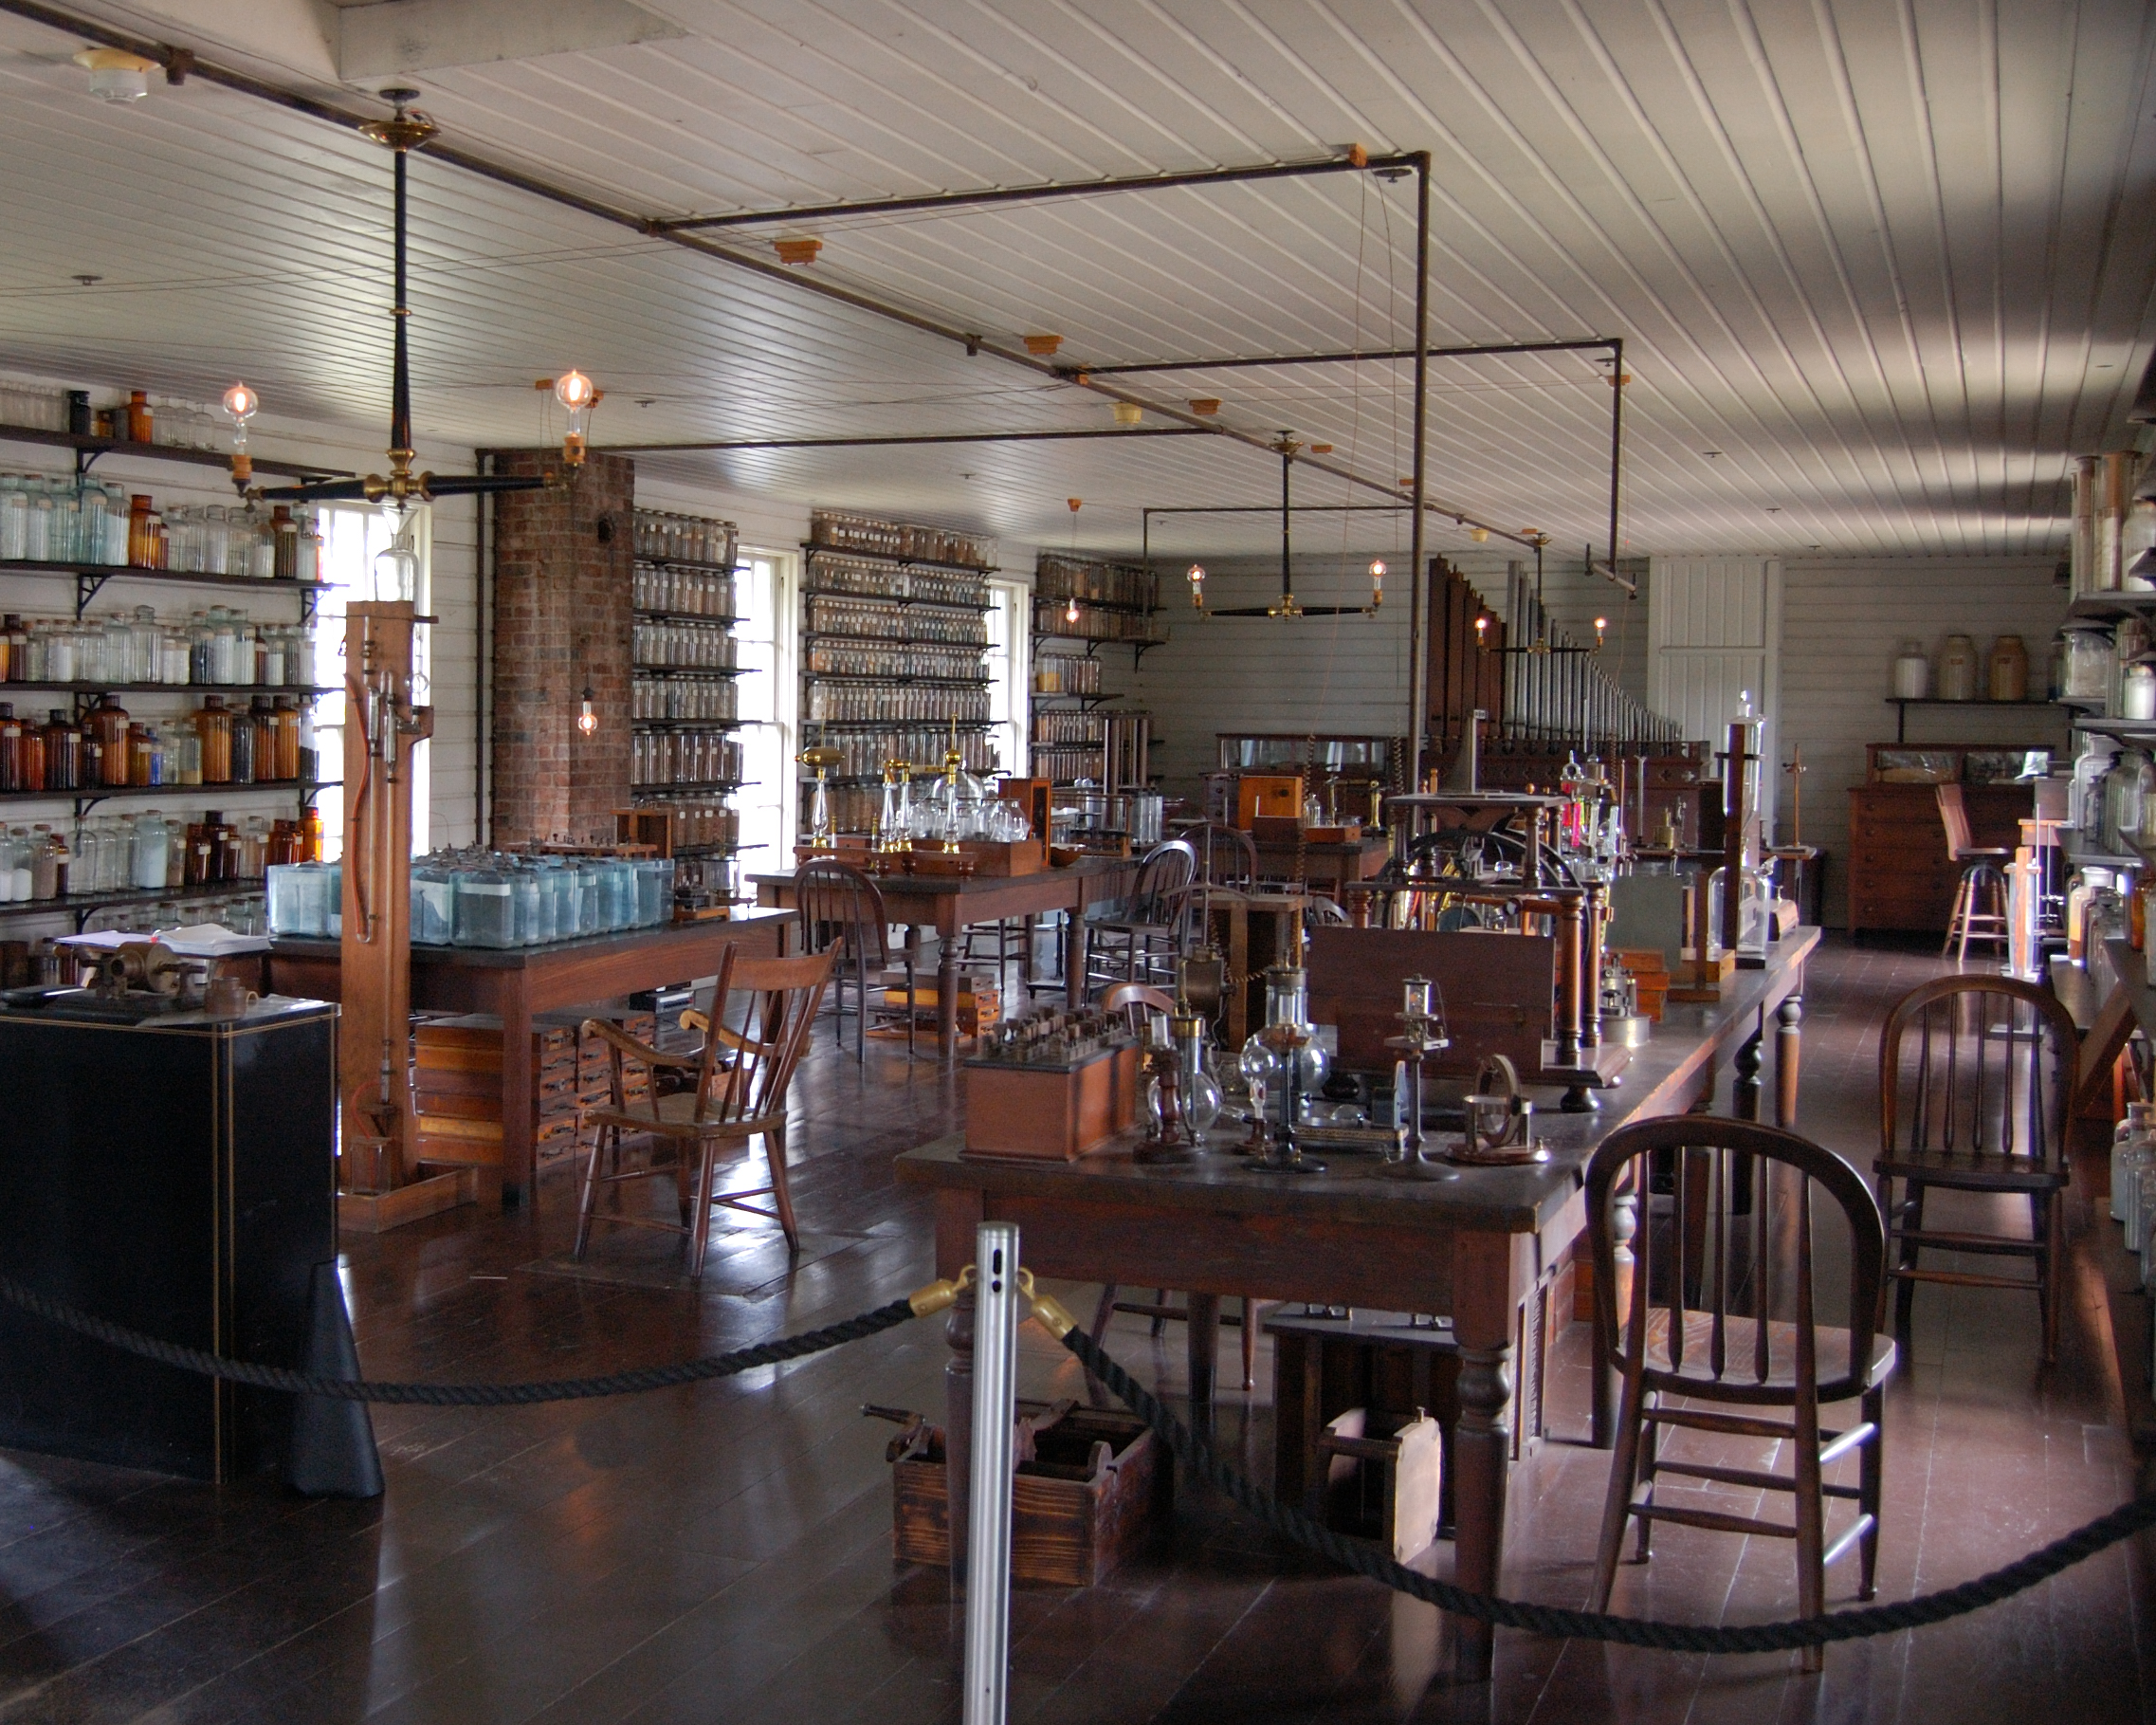 File:Menlo Park Laboratory.JPG - Wikipedia, the free encyclopedia